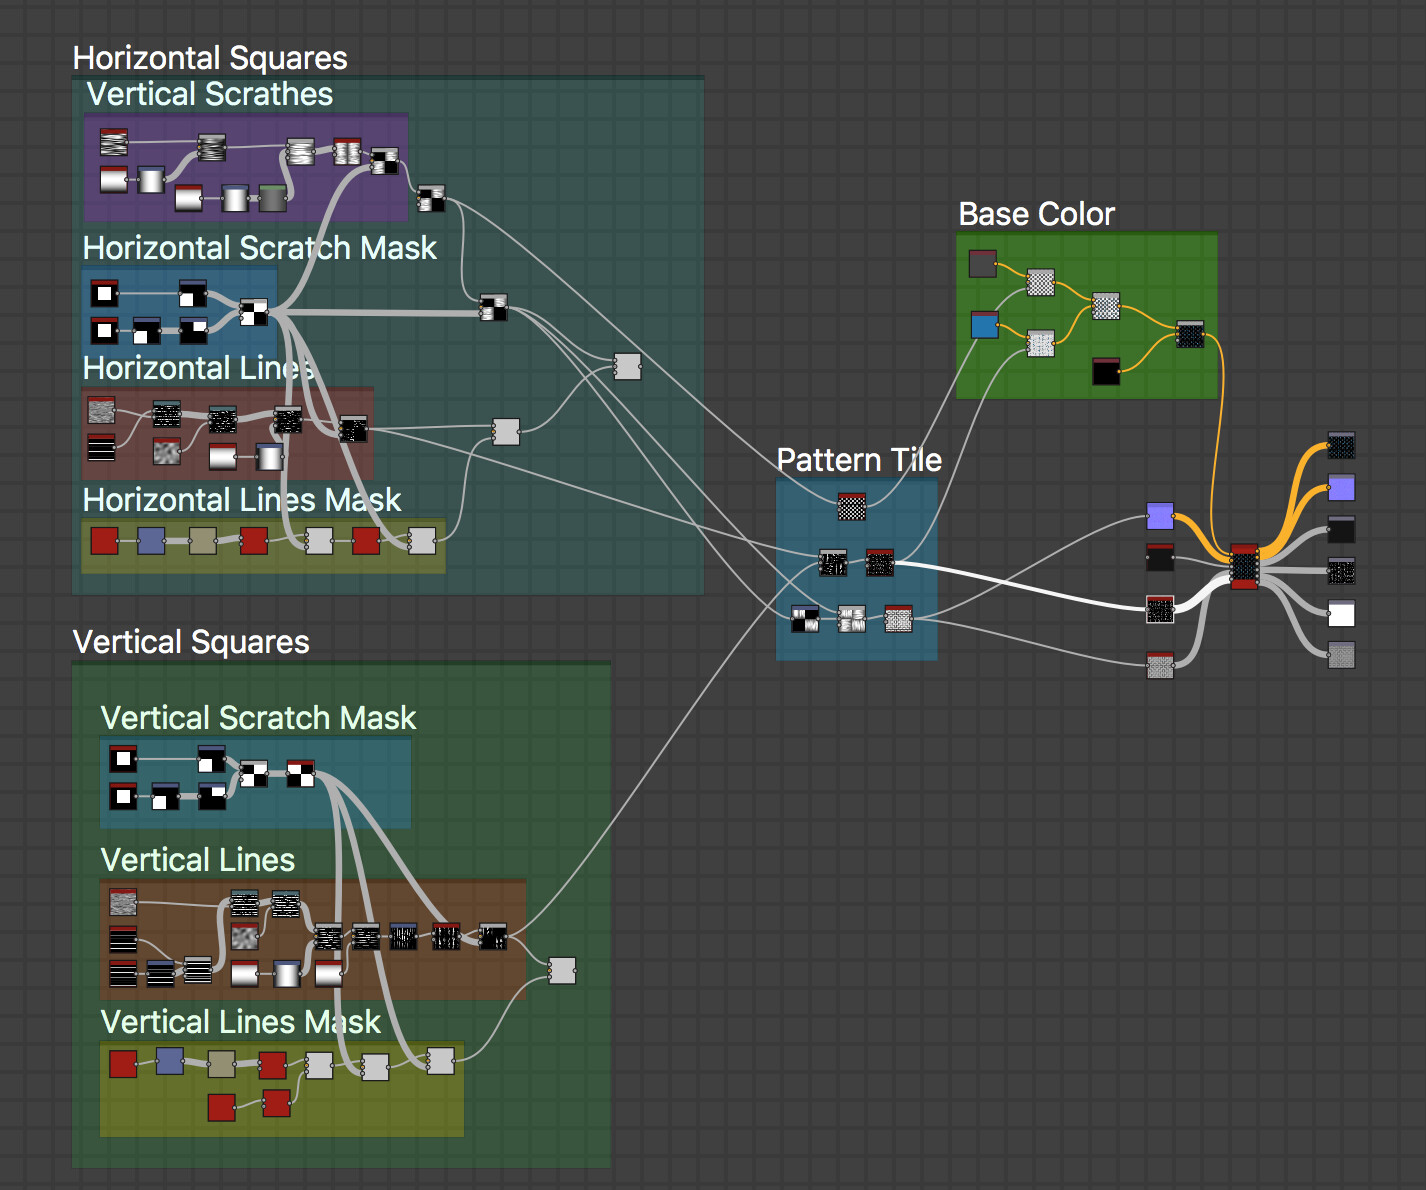 This is the material breakdown in Substance Designer for the 3/4 Orthotic